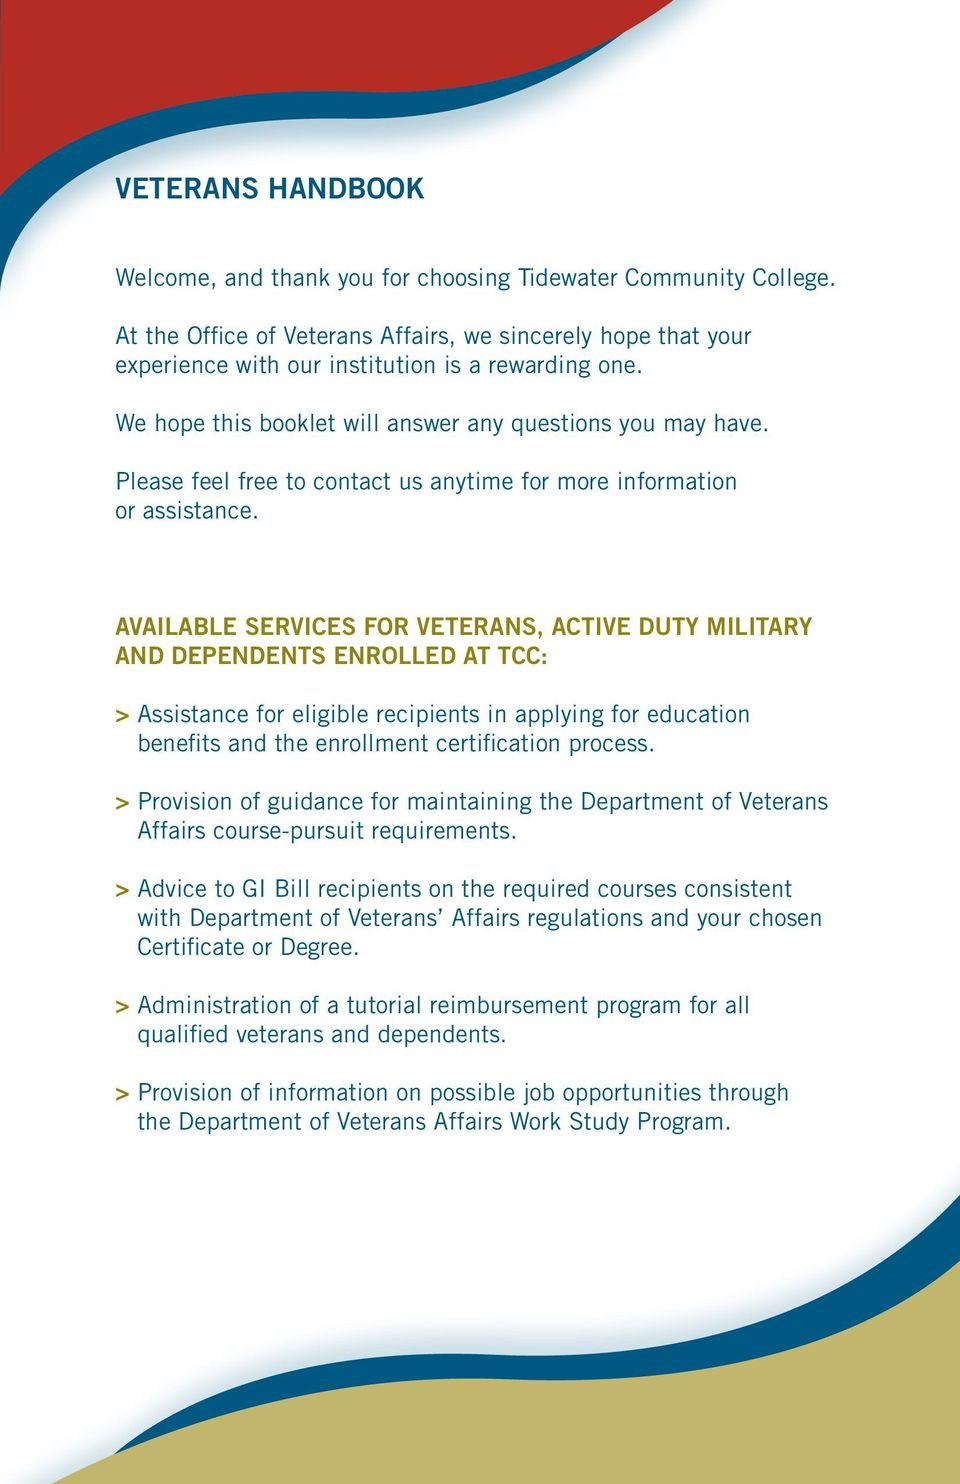 available services for veterans, active duty military and dependents enrolled at TCC: > Assistance for eligible recipients in applying for education benefits and the enrollment certification process.